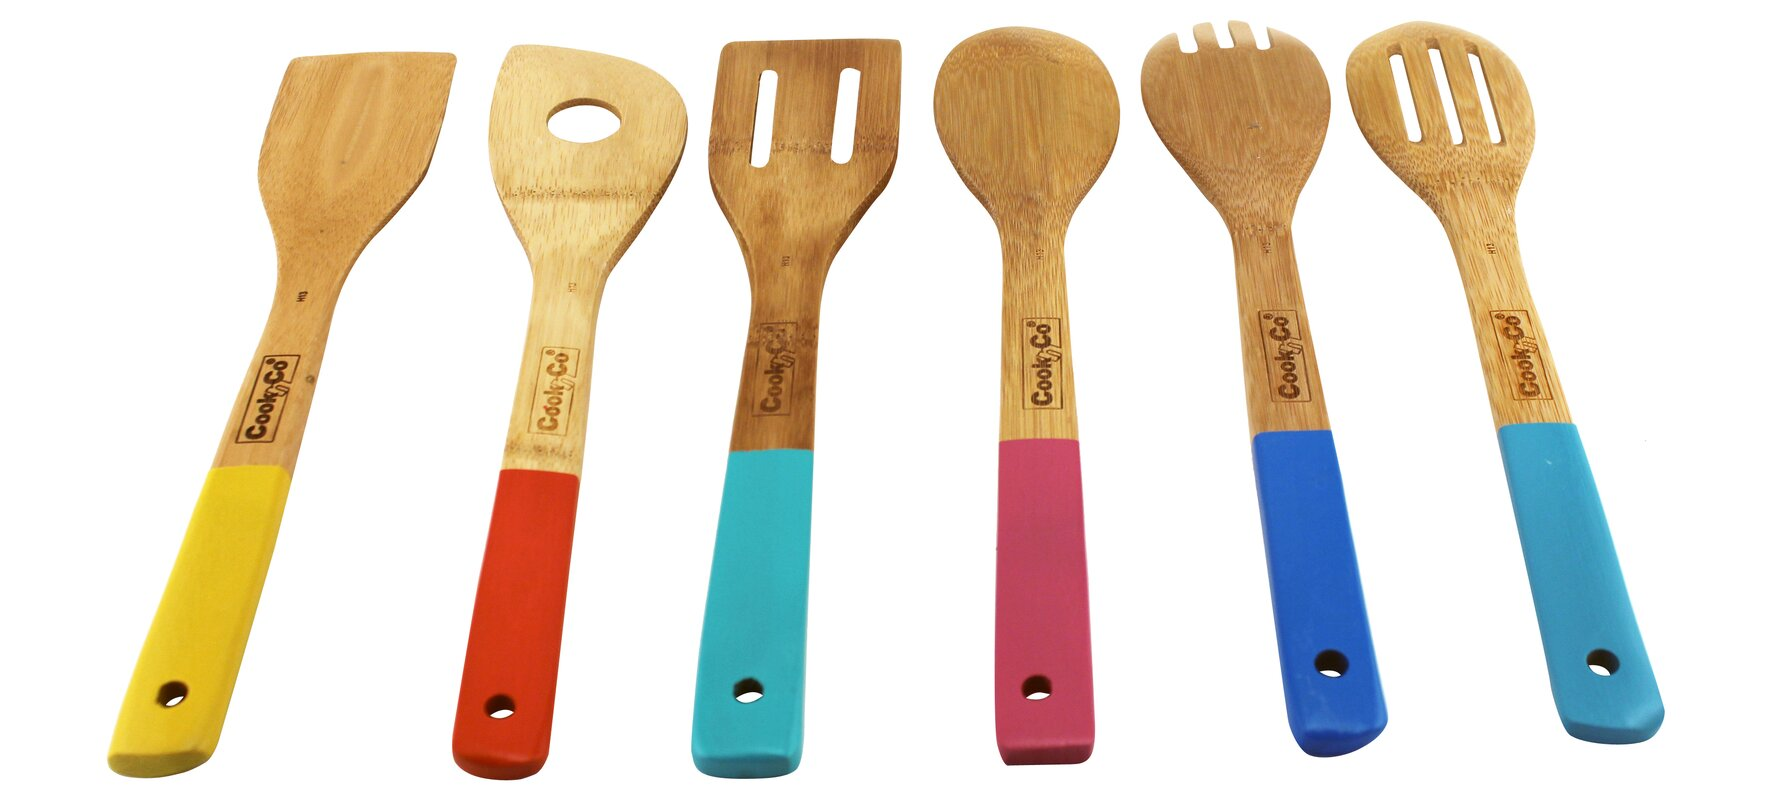 BergHOFF CookNCo 6 Piece Bamboo Utensil Set & Reviews